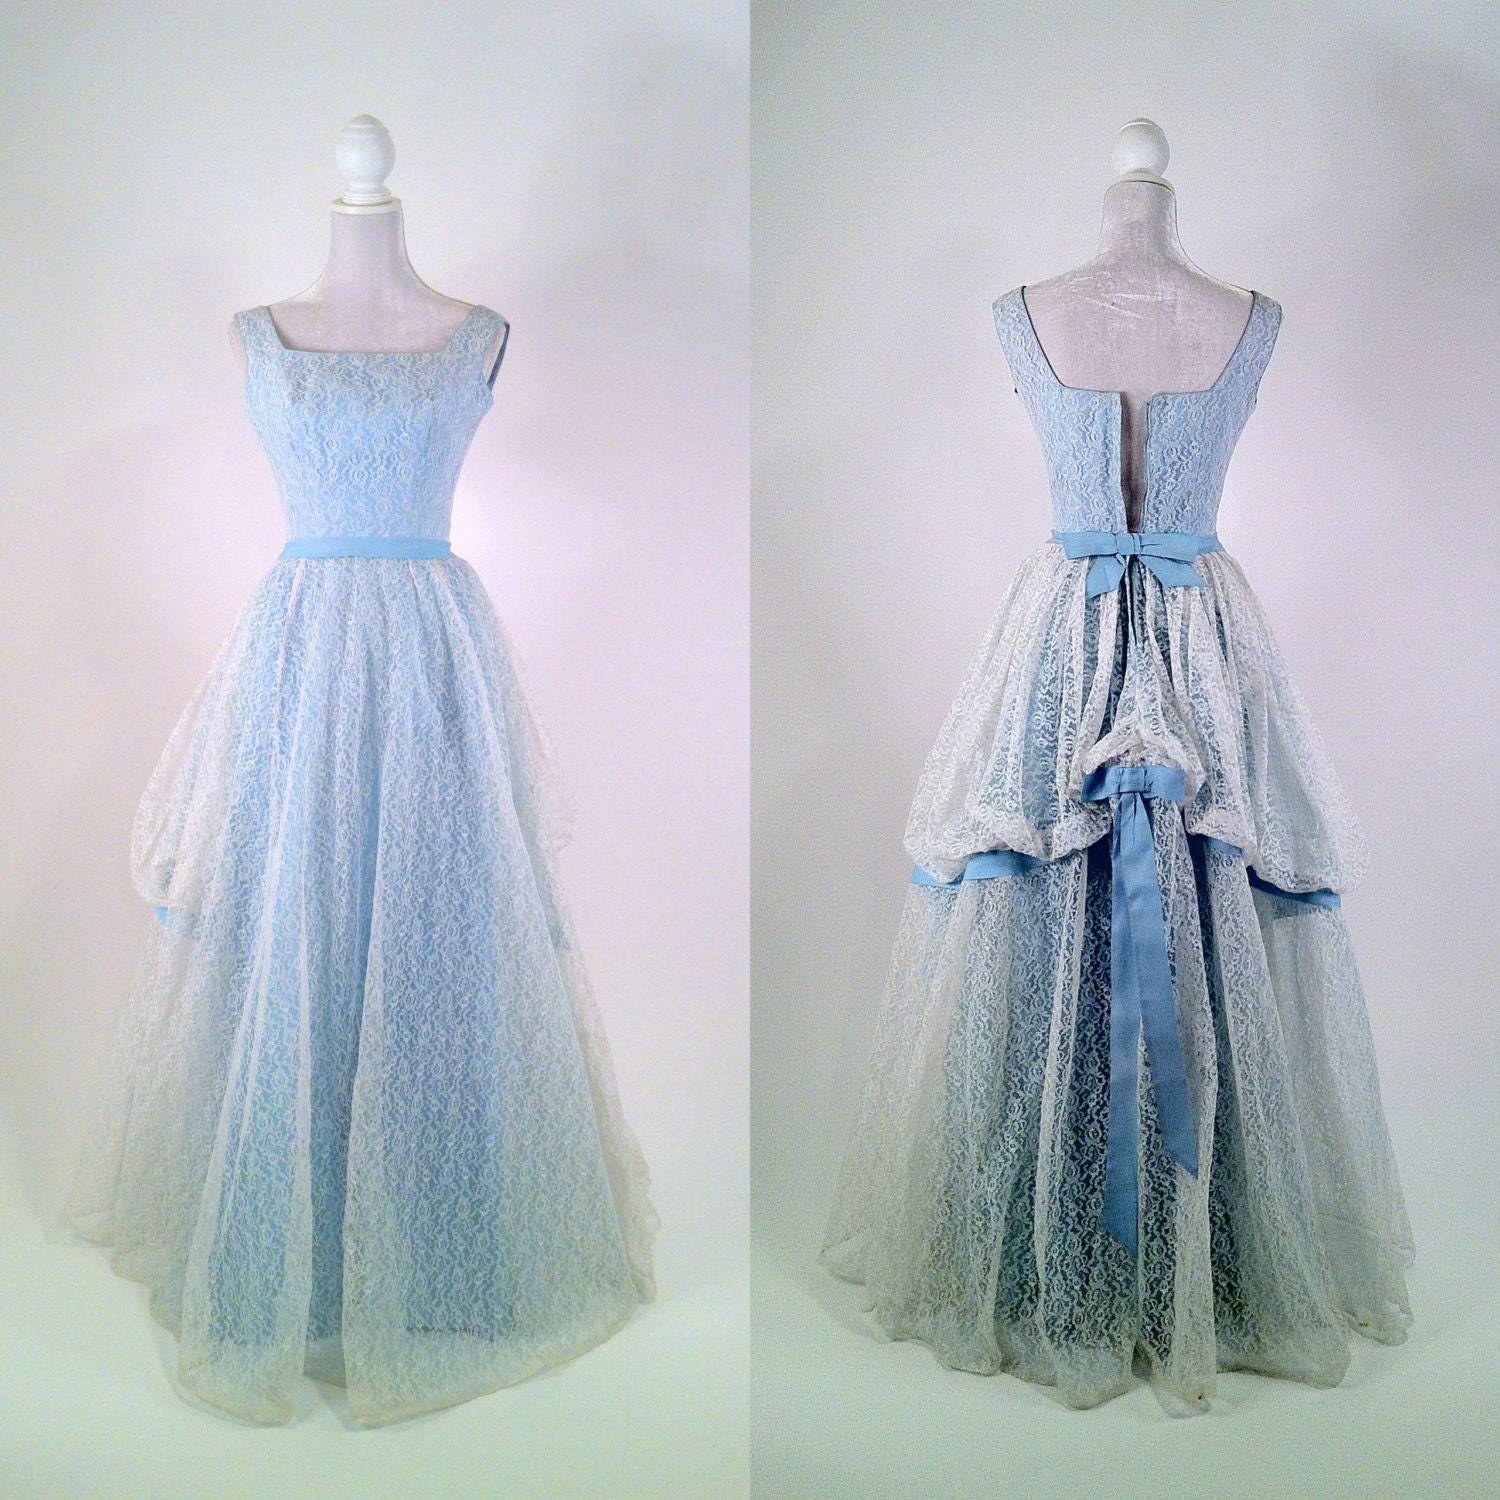 Vintage 1950s White Lace Amp Light Blue Gown Prom Dress